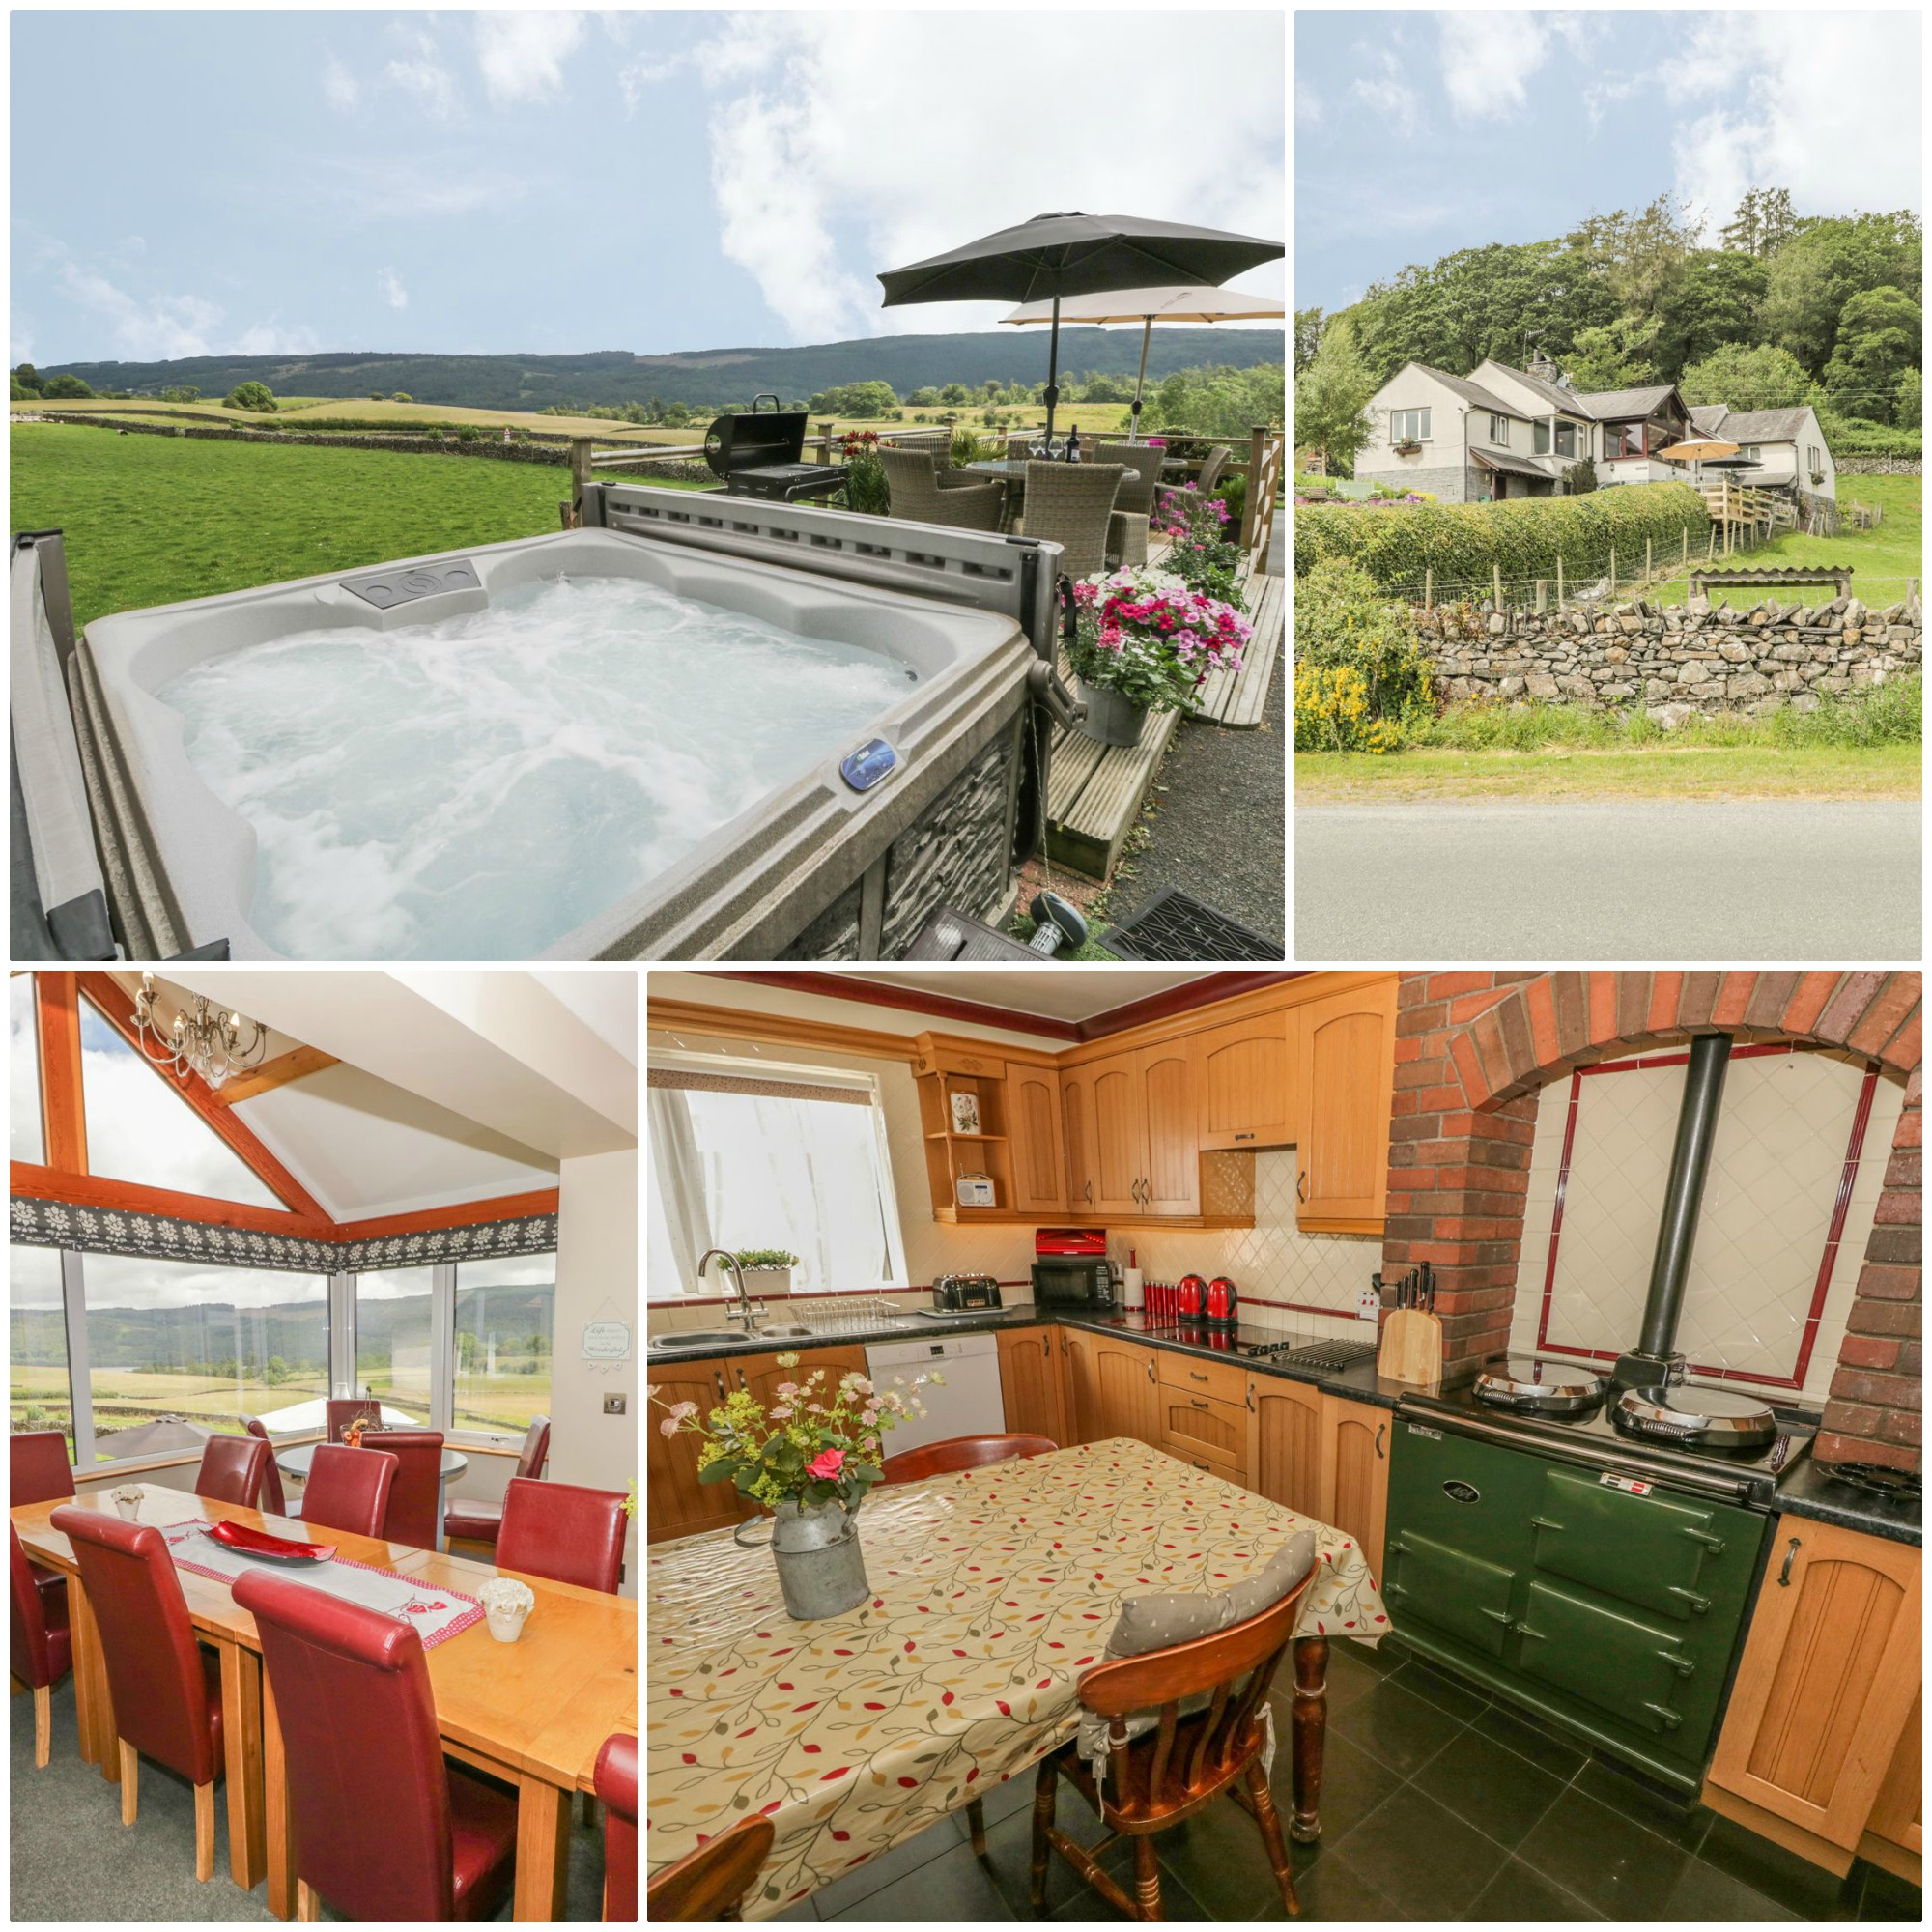 Sleeps 16 near Coniston with lovely views and a hot tub and Aga - pet friendly